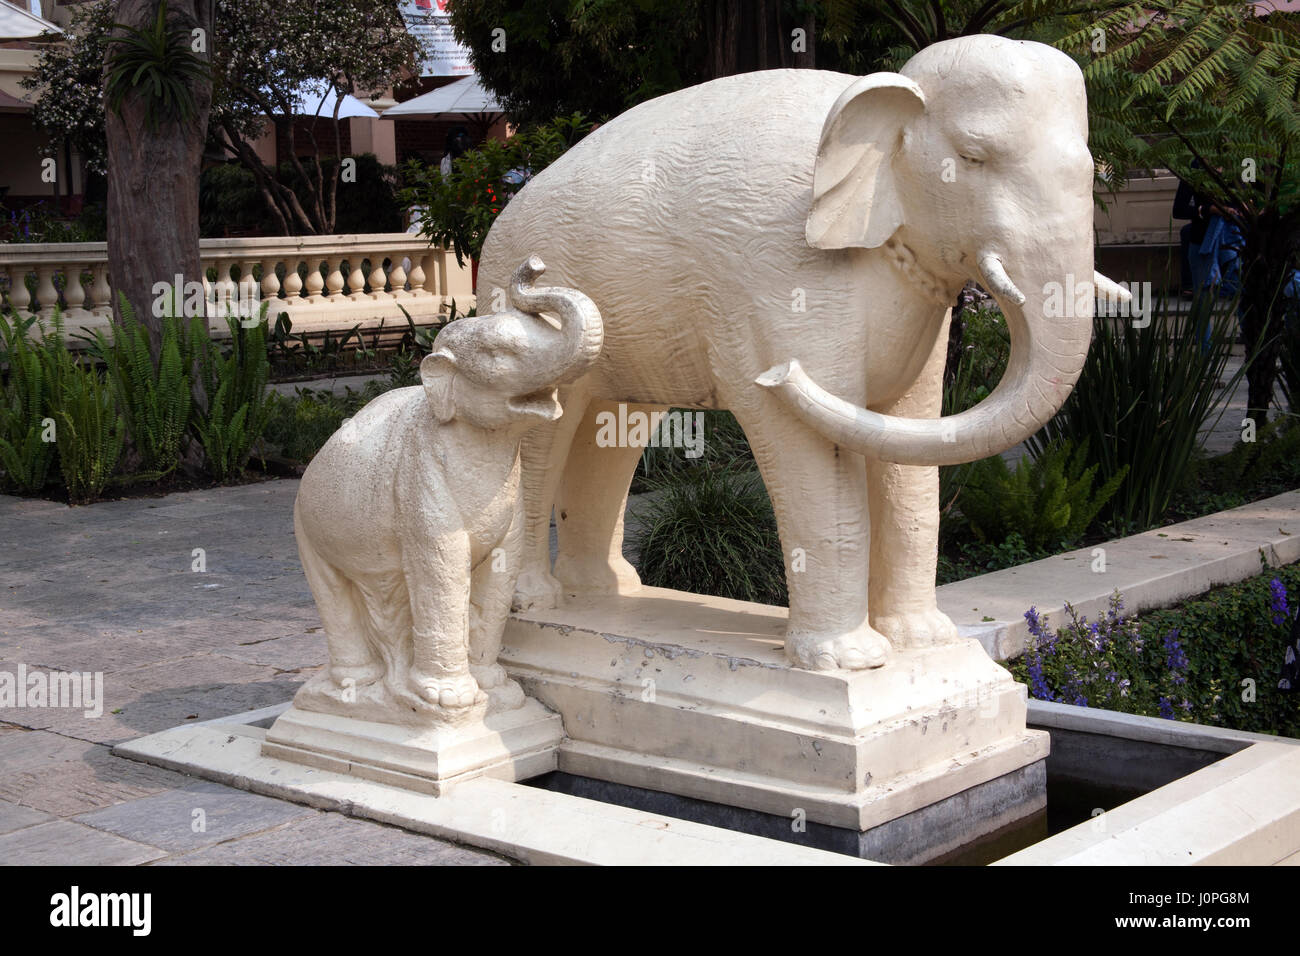 Mother And Baby Elephant Statue In The Garden Of Dreams, Kaiser Mahal,  Thamel, Kathmandu, Nepal